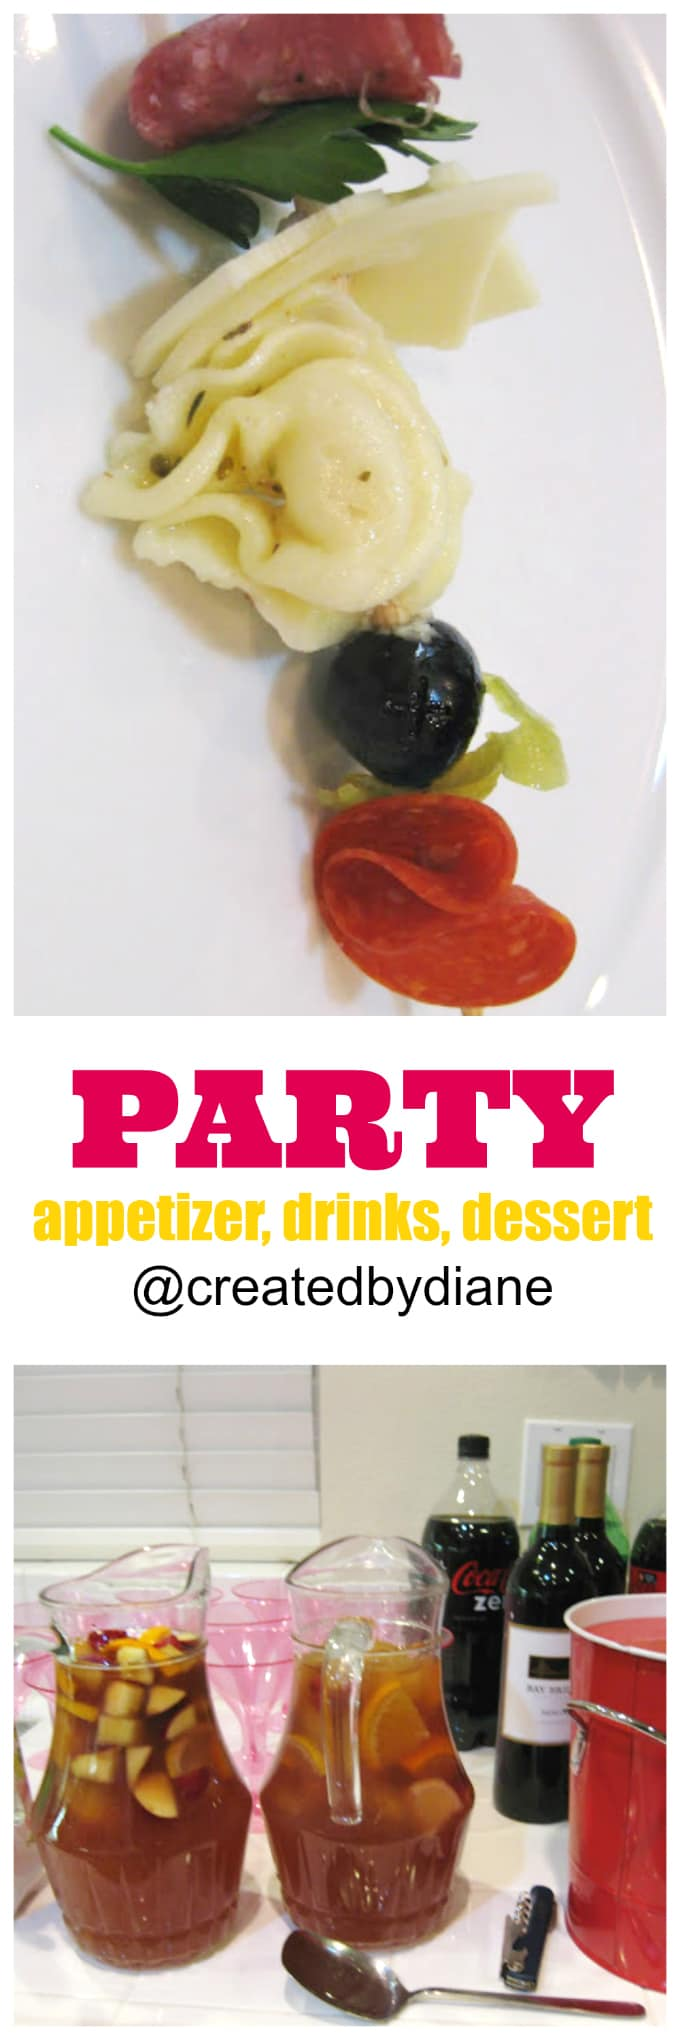 party how to appetizer drinks and dessert made easy @createdbydiane